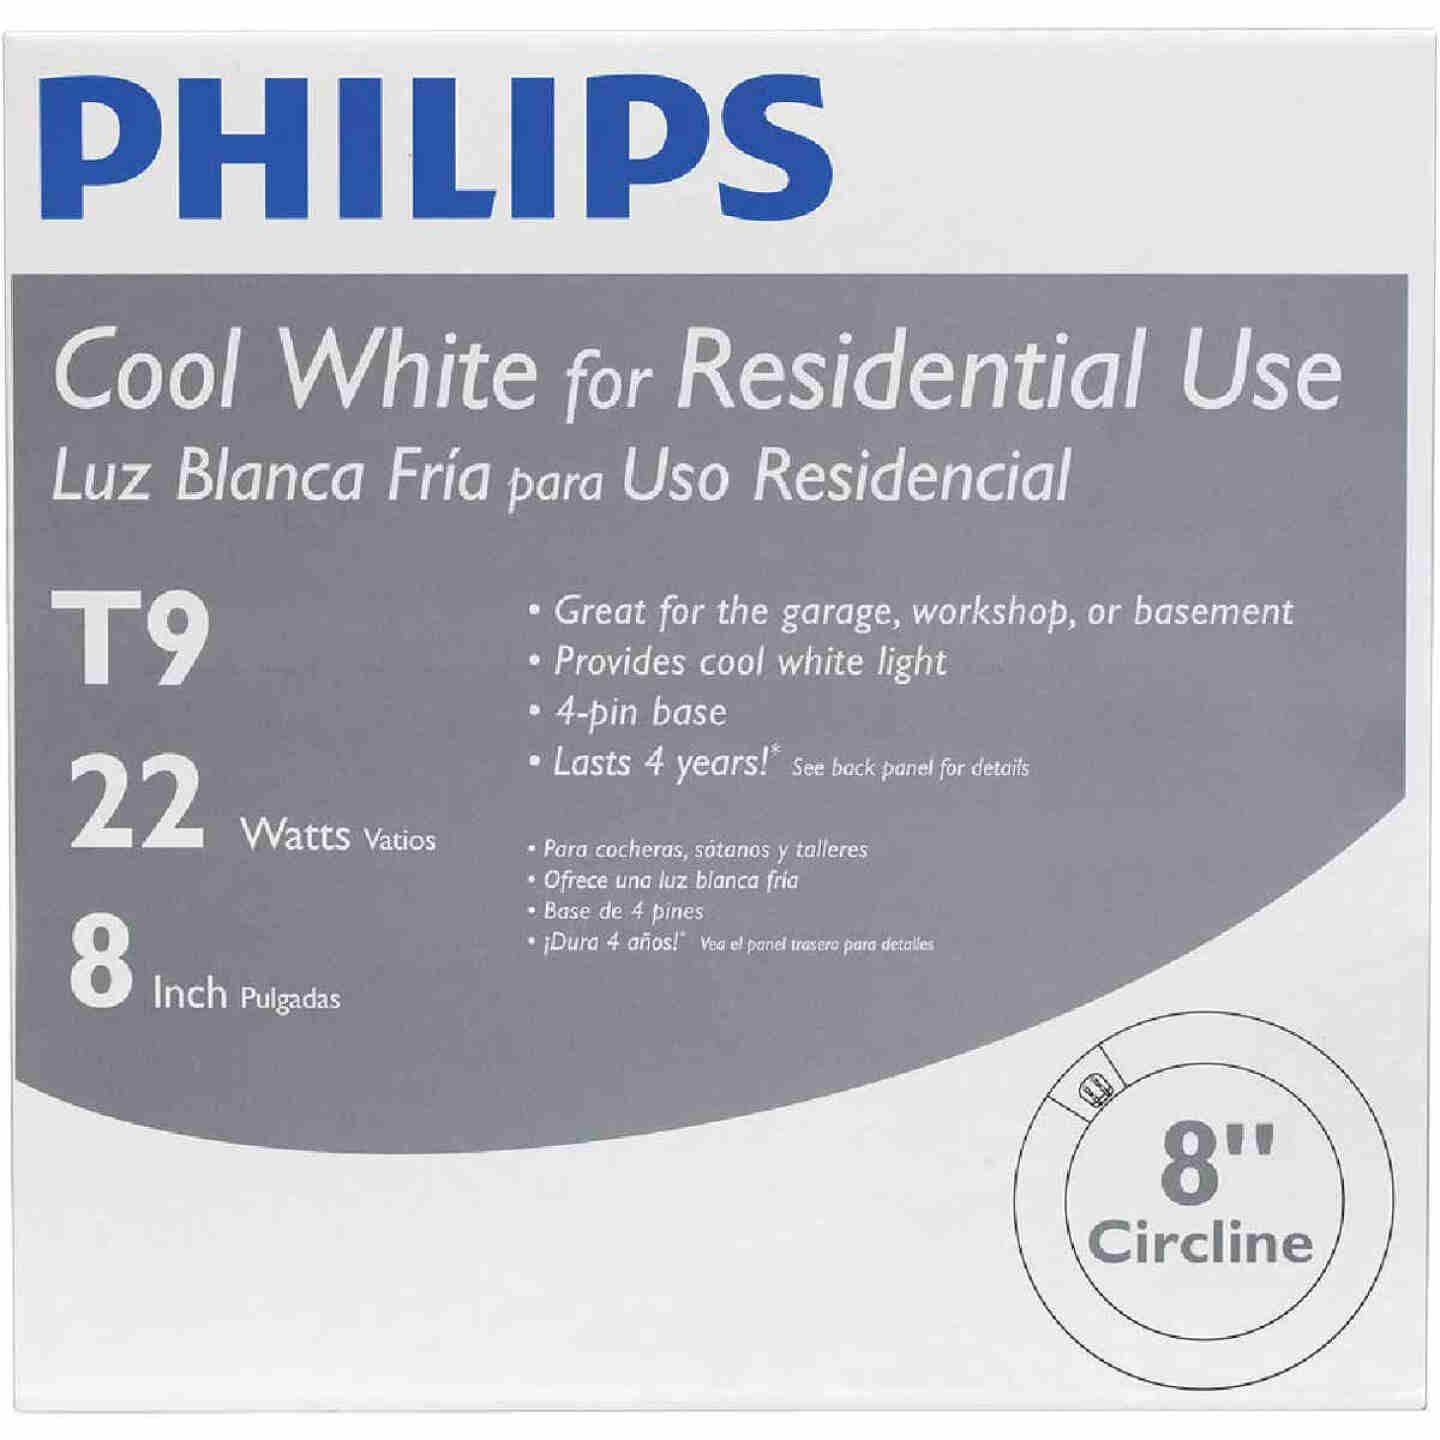 Philips 22W 8 In. Cool White T9 4-Pin Circline Fluorescent Tube Light Bulb Image 2